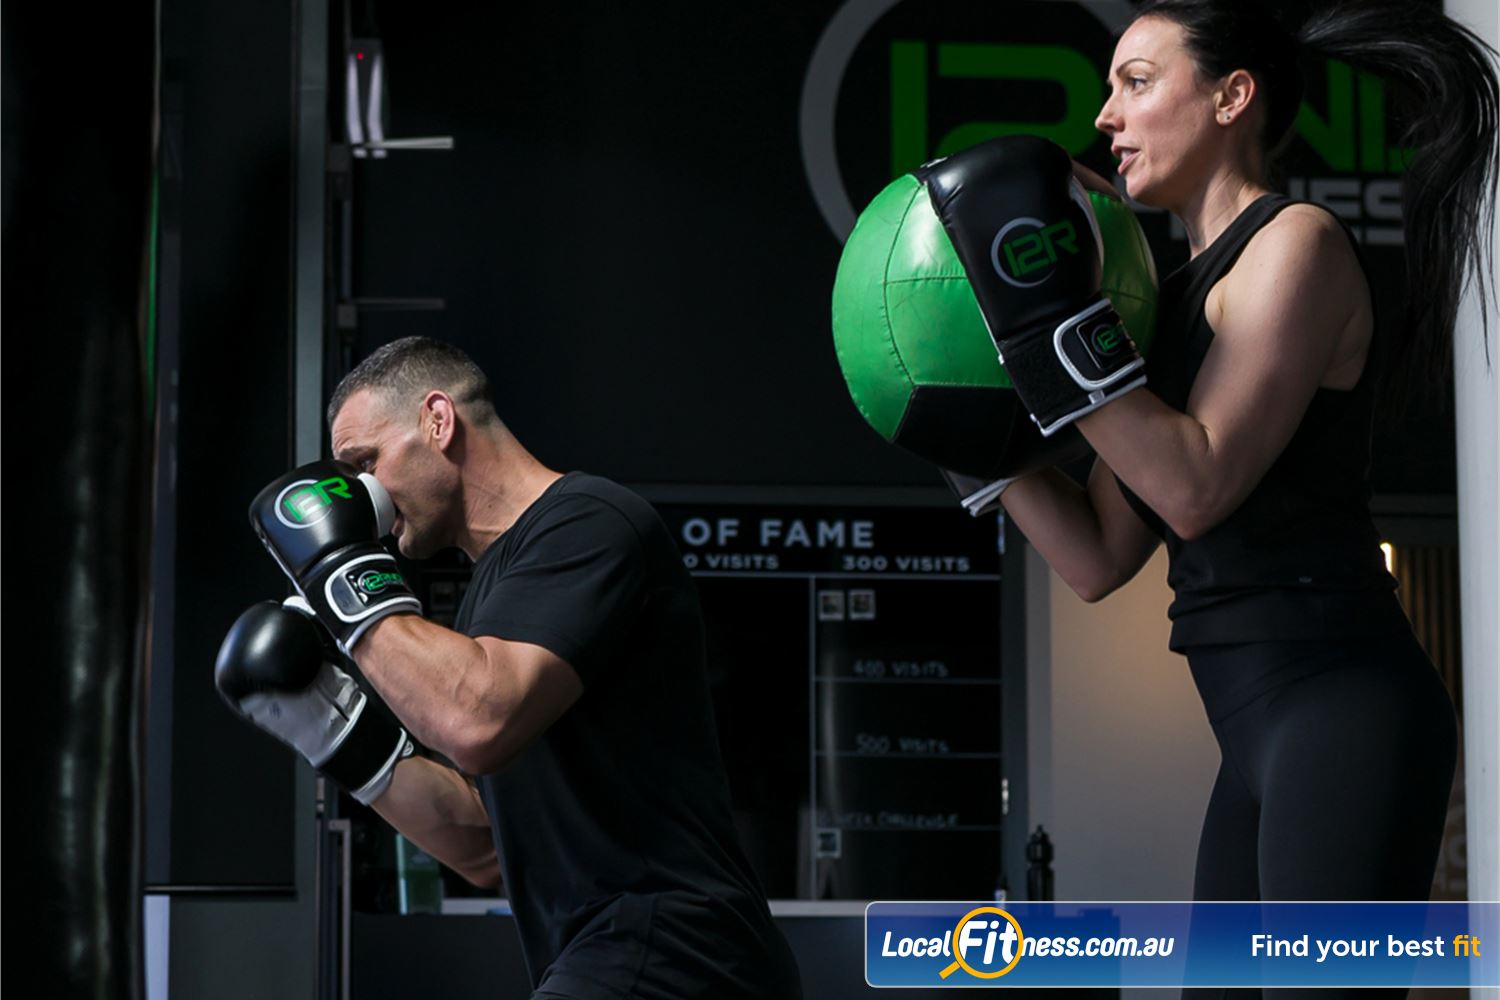 12 Round Fitness Near Ashburton Combining functional strength, cardio and boxing drills.